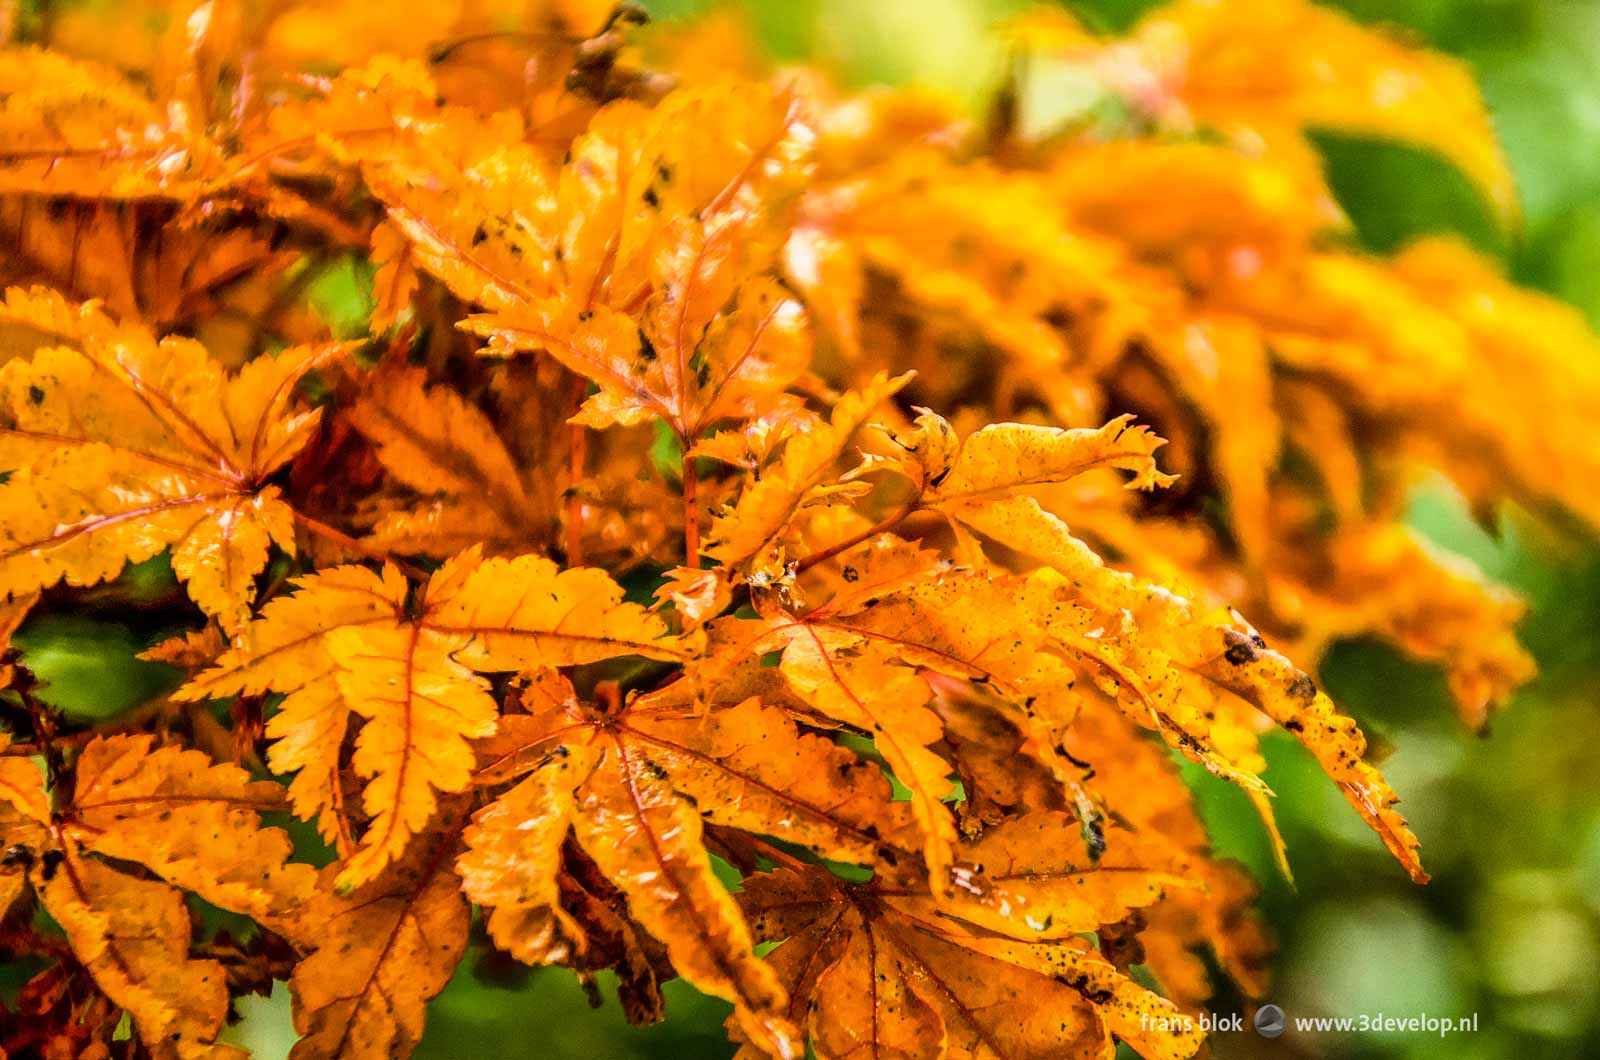 Humid yellow brown leaves of an oak tree in autumn